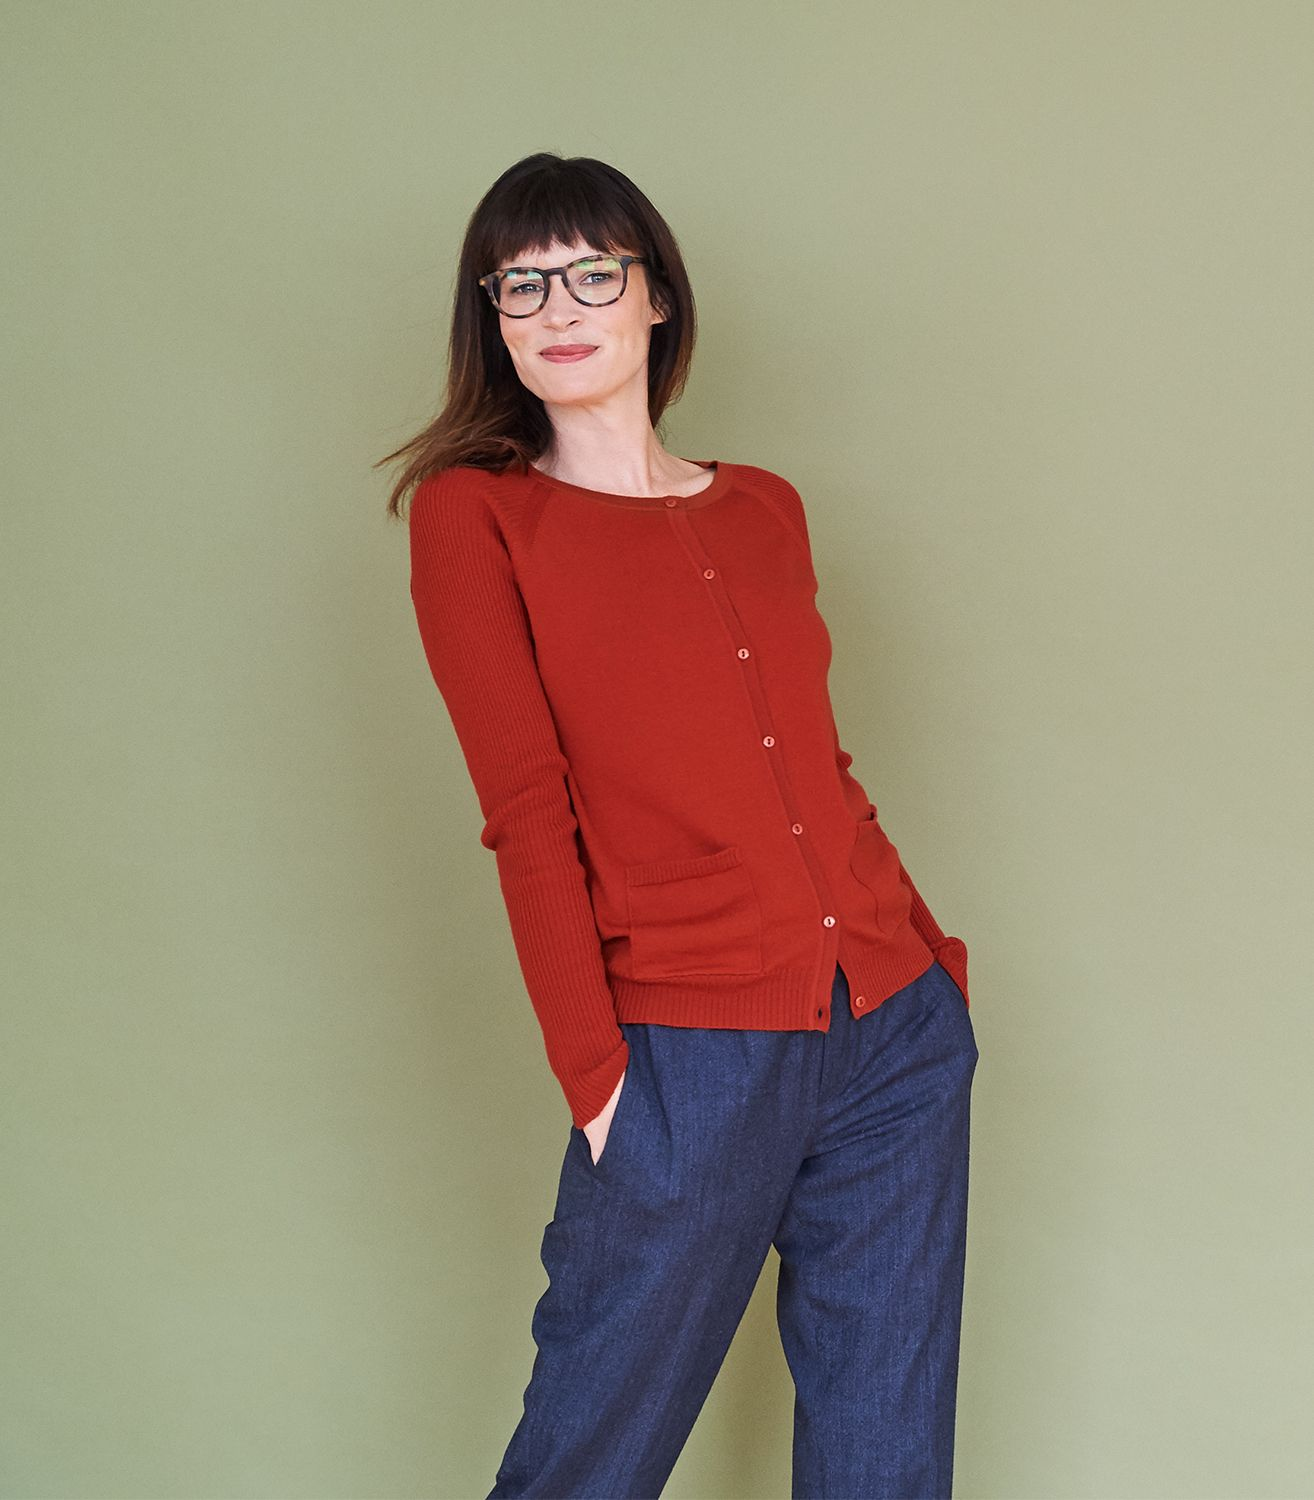 https://www.wooloverslondon.com/women/cardigan/womens-merino-crew ...